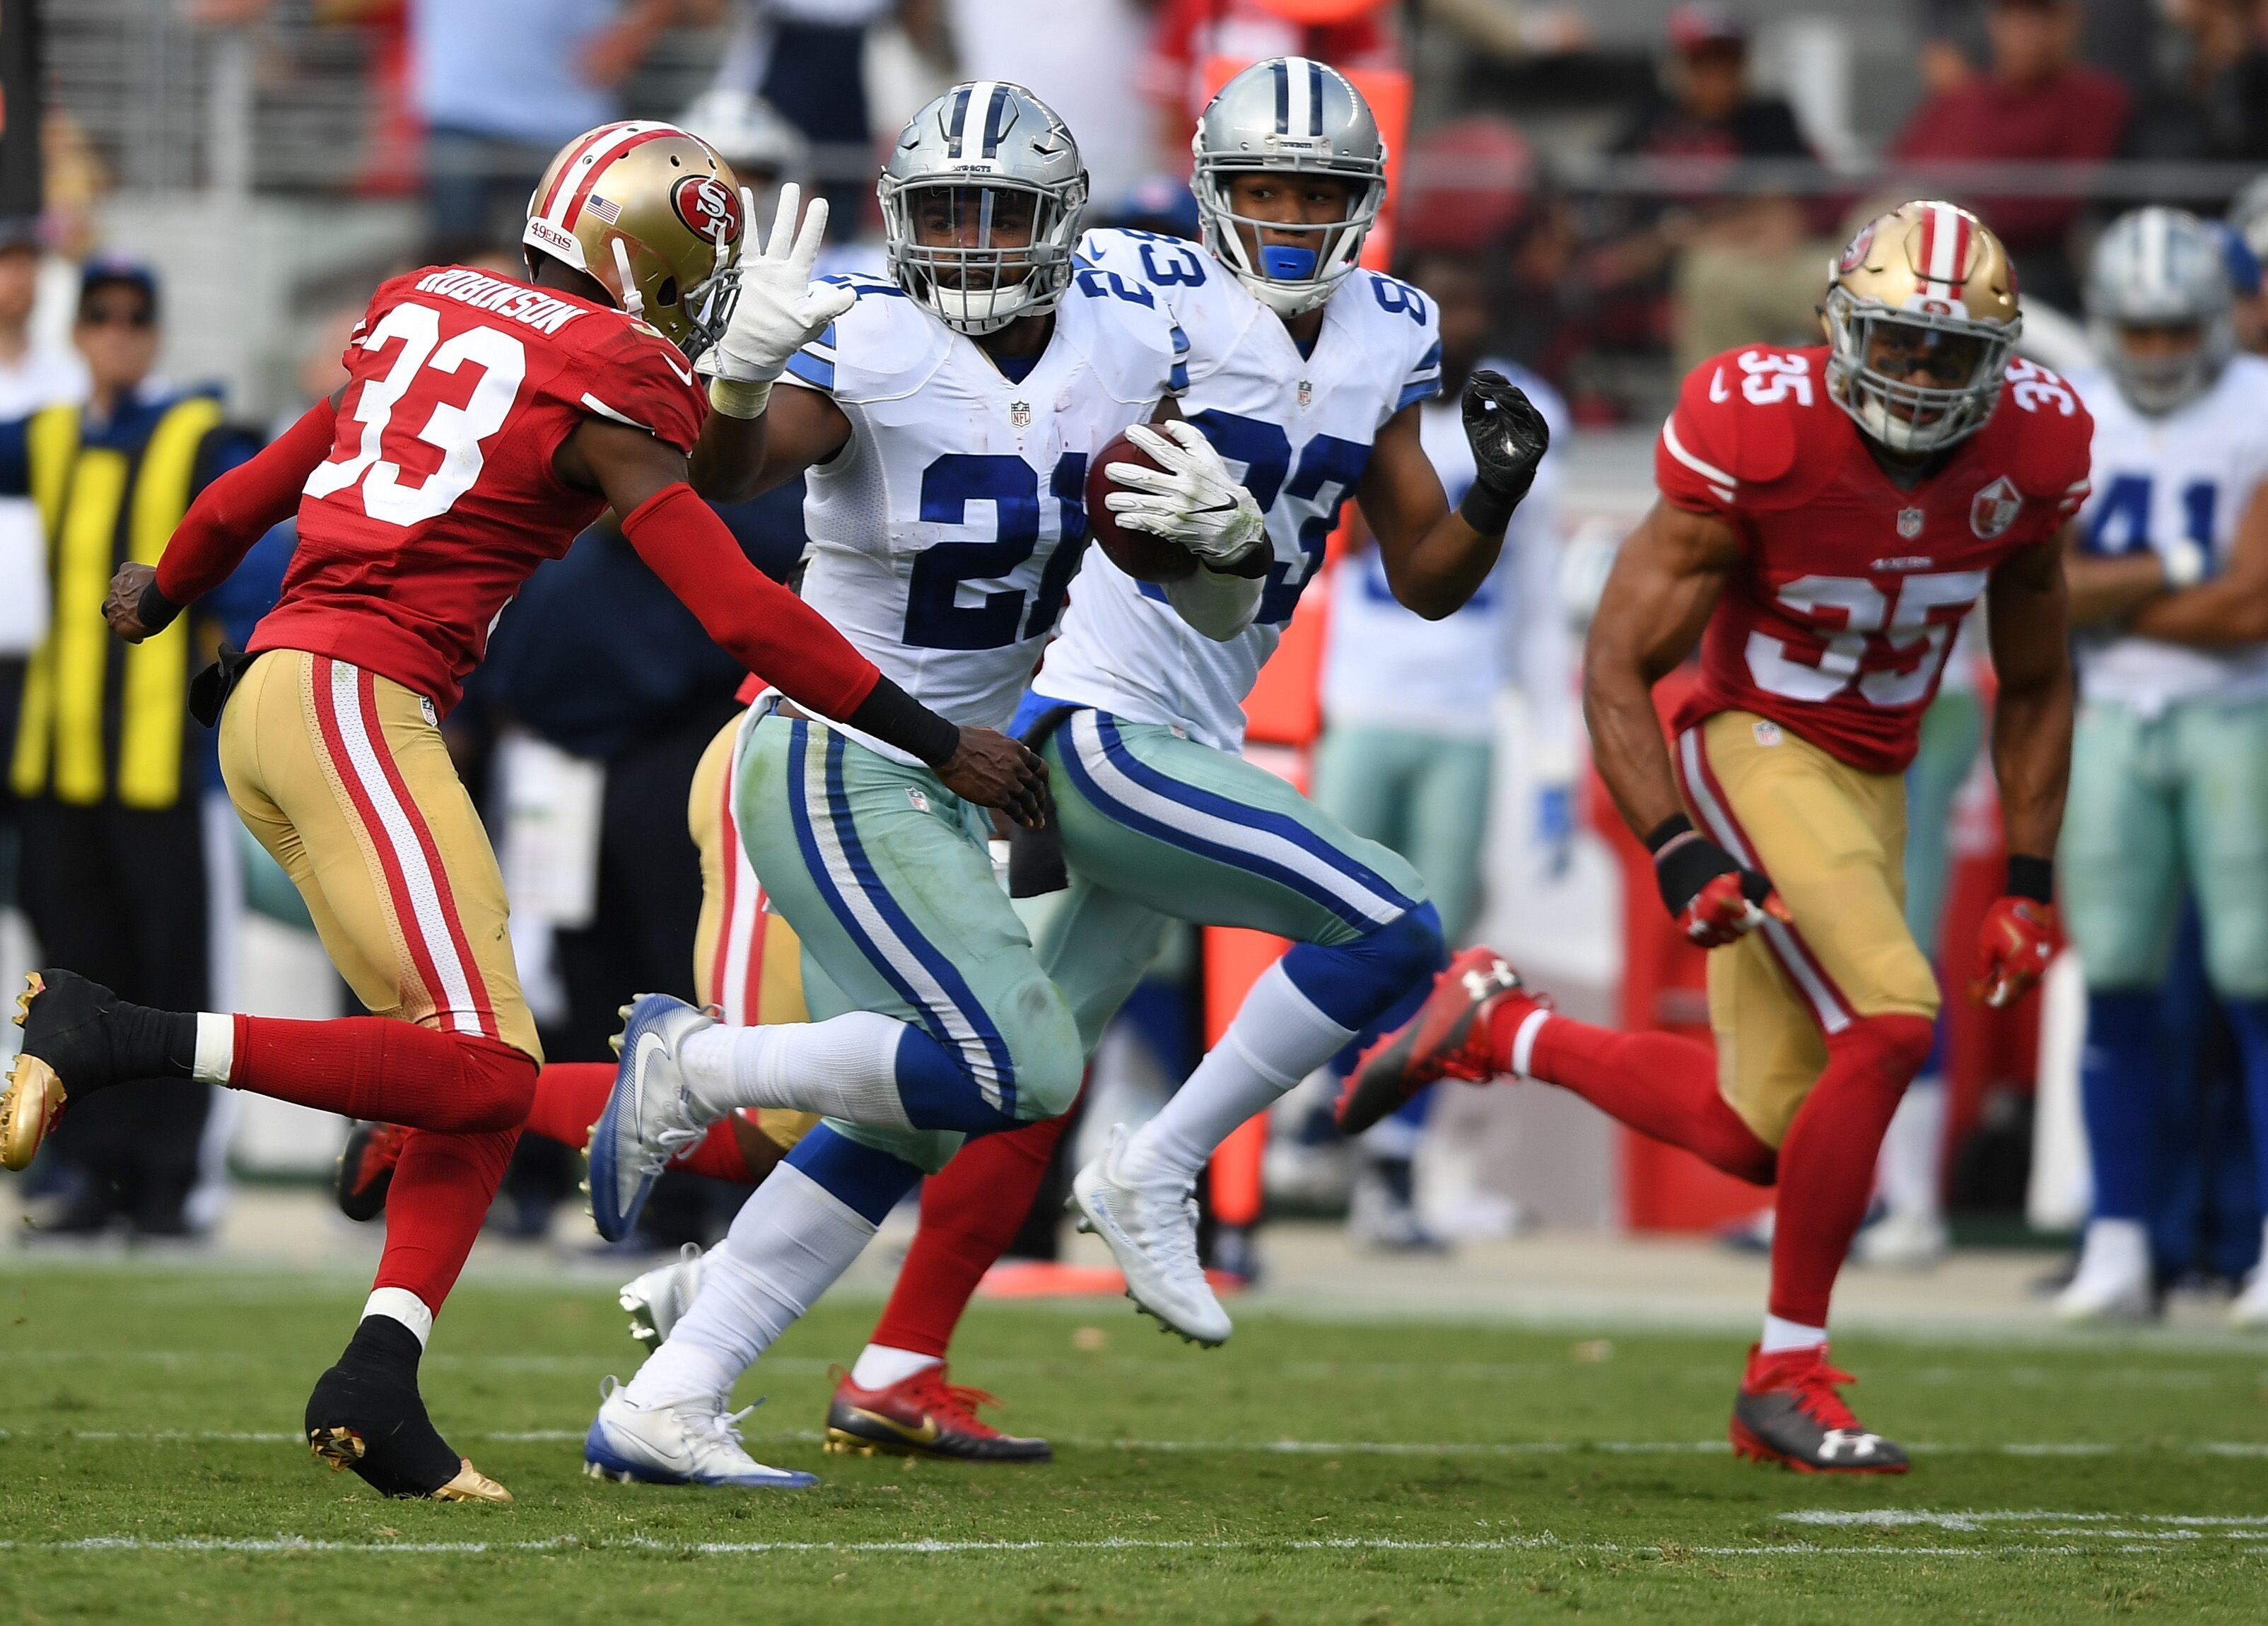 612072736-dallas-cowboys-v-san-francisco-49ers.jpg